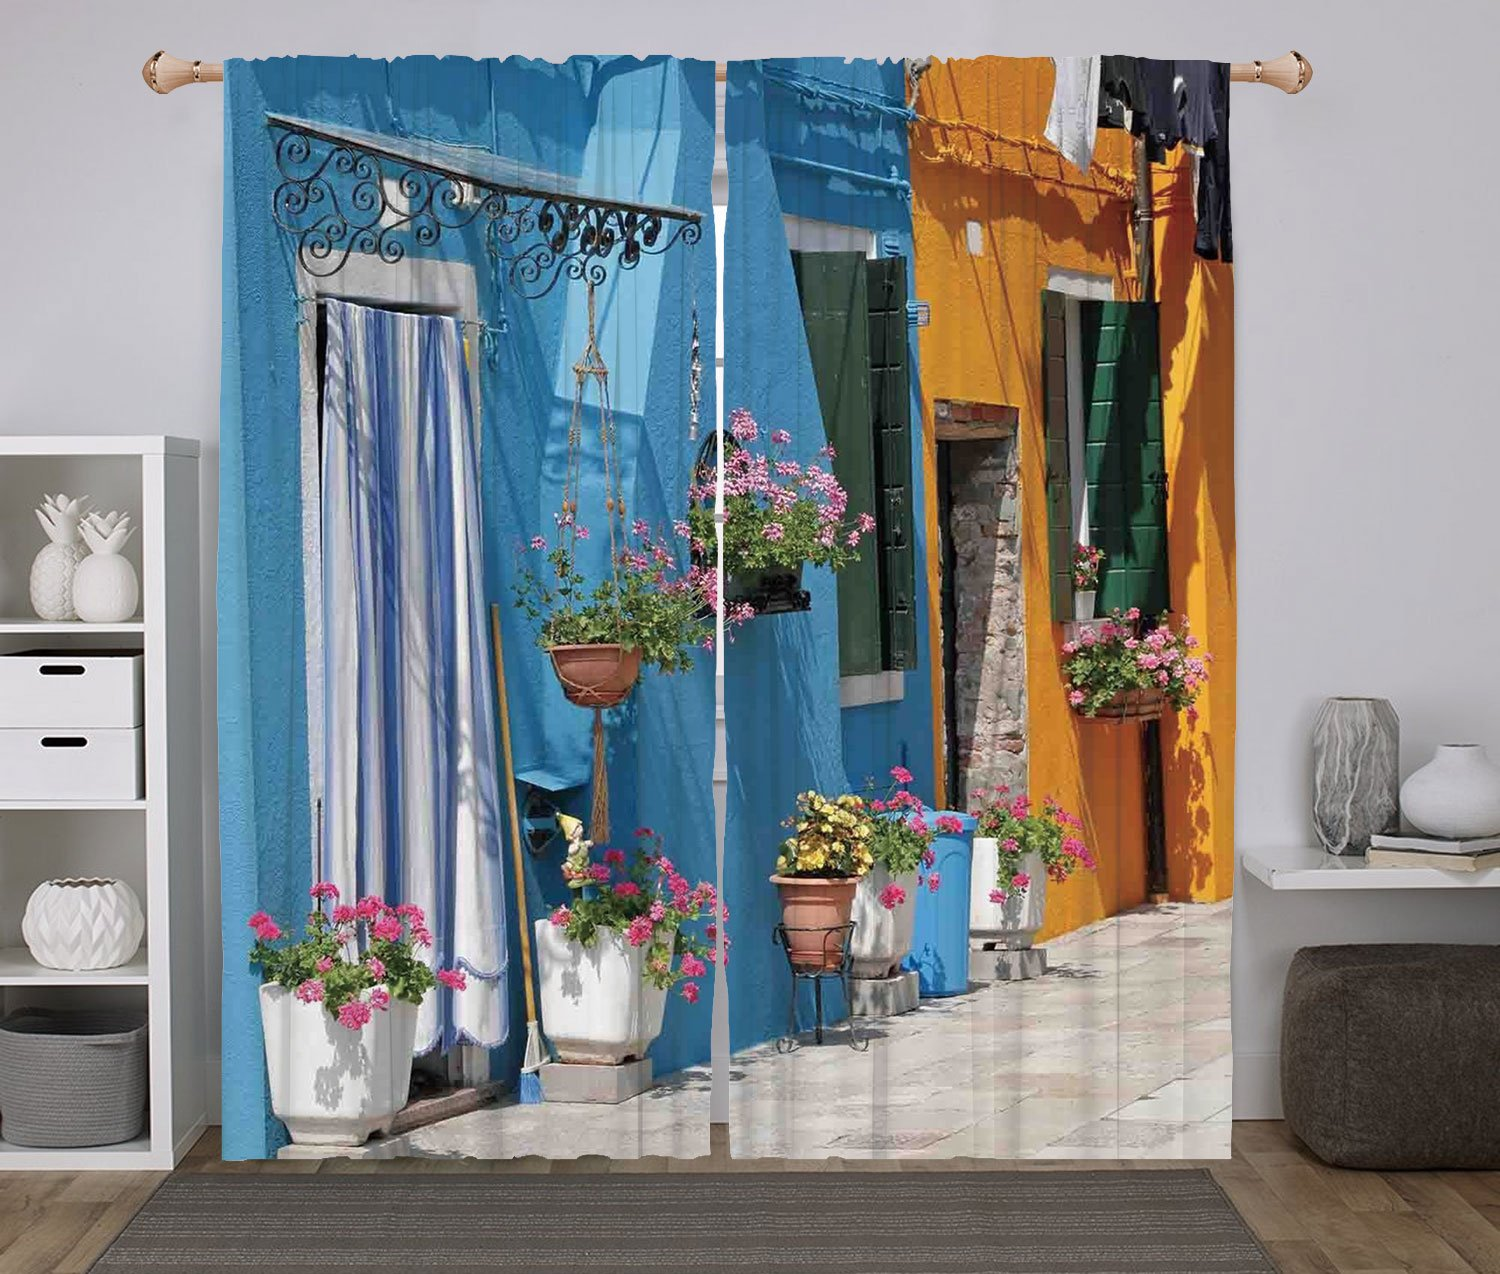 2 Panel Set Window Drapes Kitchen Curtains,Nursery Floral Background with Funny and Cute Animals Giraffe Lion Monkeys and Butterflies Decorative Multicolor,for Bedroom Living Room Dorm Kitchen Cafe HongKong Fudan Investment Co. Limited DLCGCL_18045_K140XG9